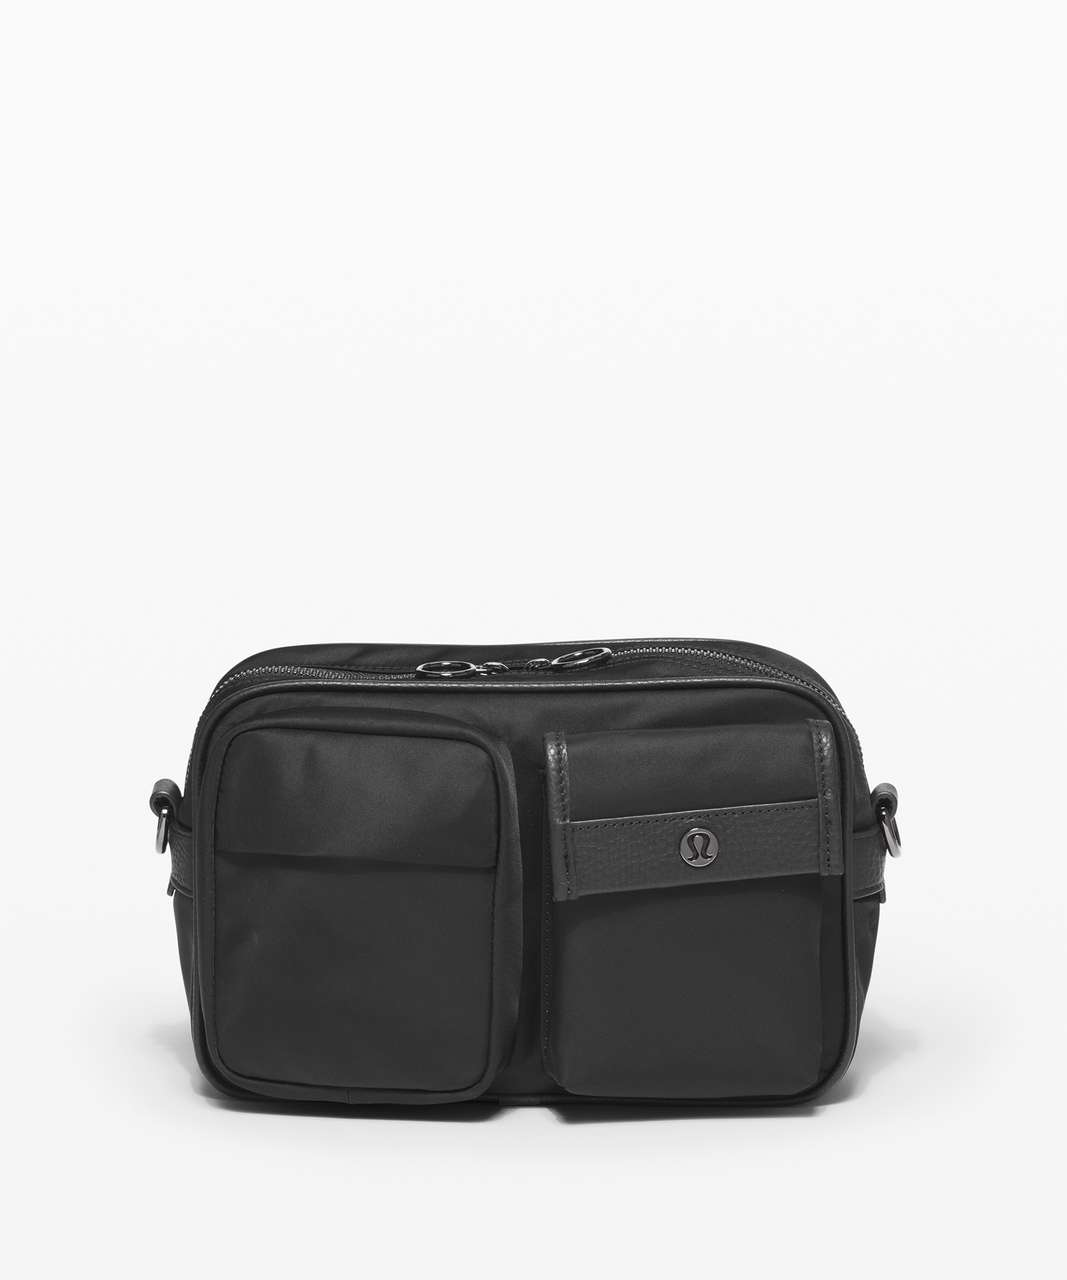 Lululemon Now and Always Hip Pack  *4L - Black